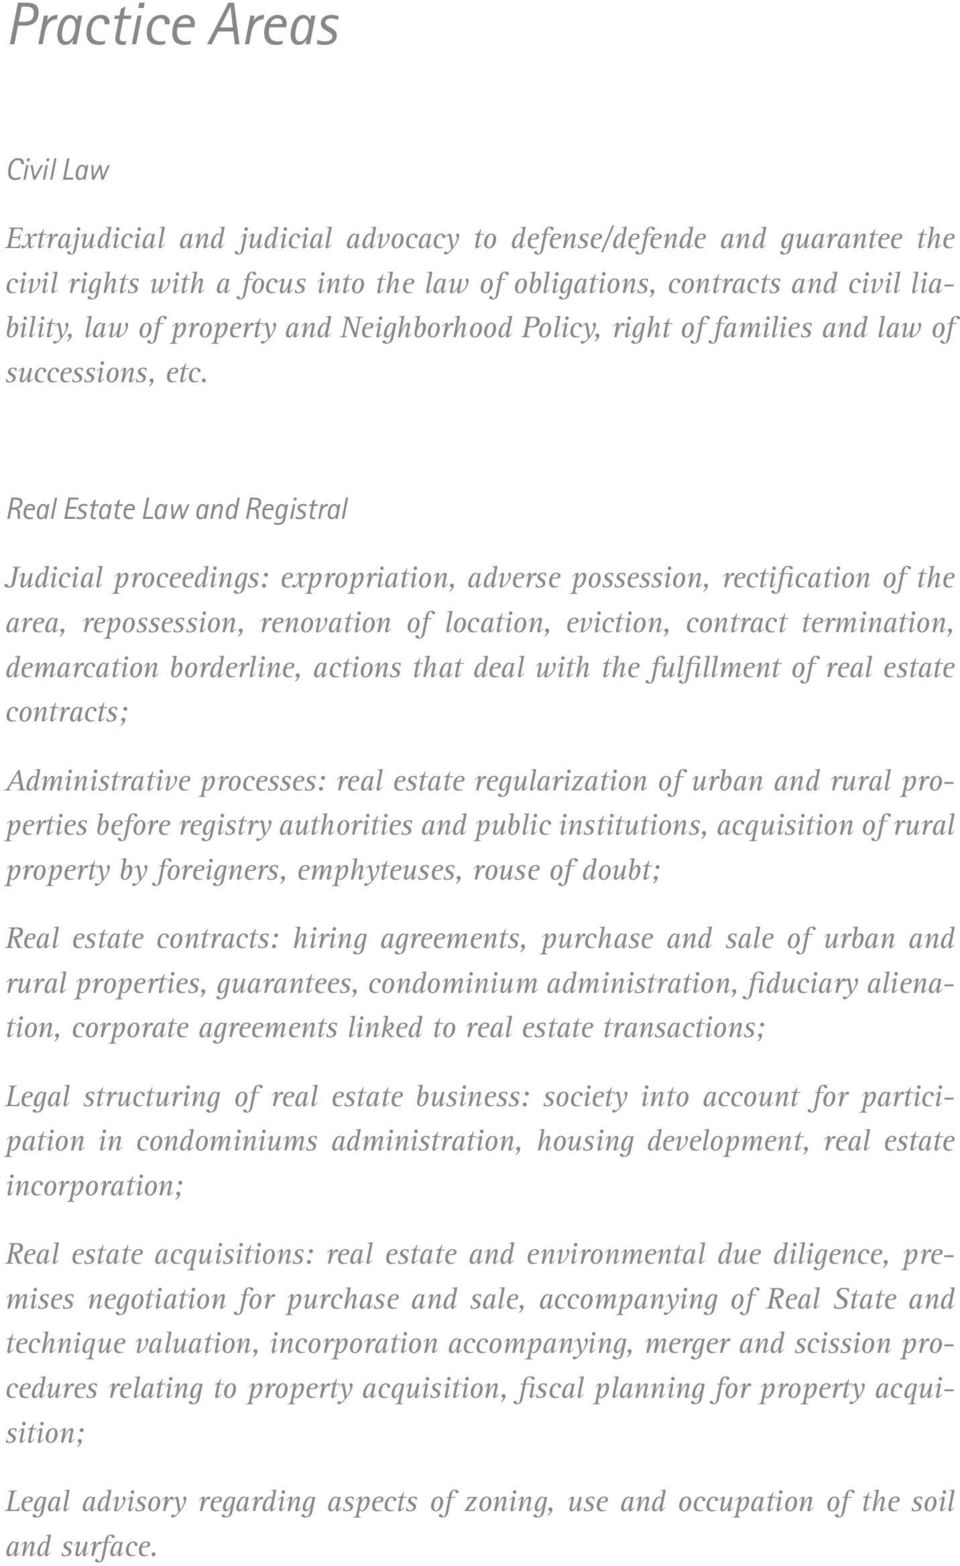 Real Estate Law and Registral Judicial proceedings: expropriation, adverse possession, rectification of the area, repossession, renovation of location, eviction, contract termination, demarcation